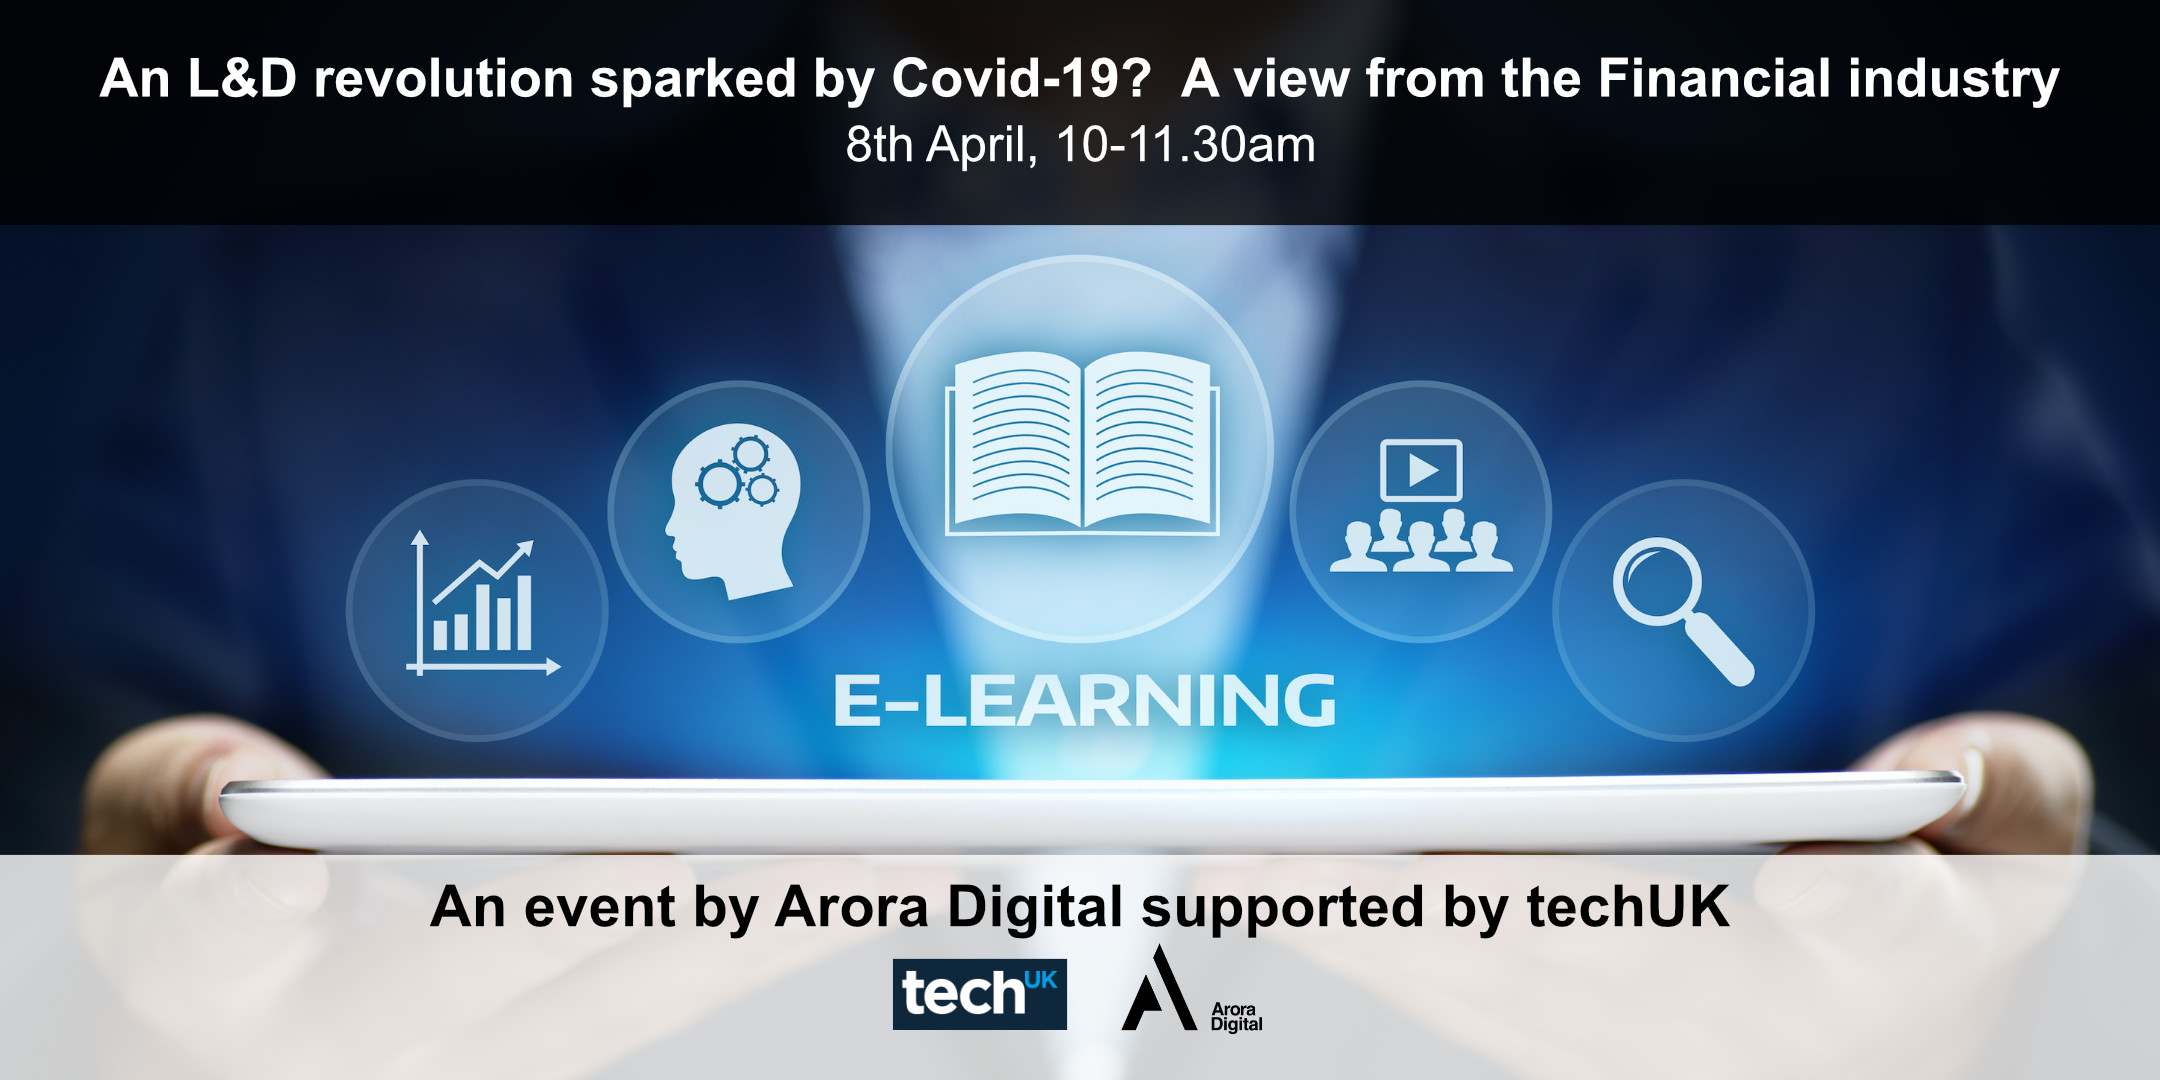 An L&D revolution sparked by Covid-19? A view from the Financial Industry